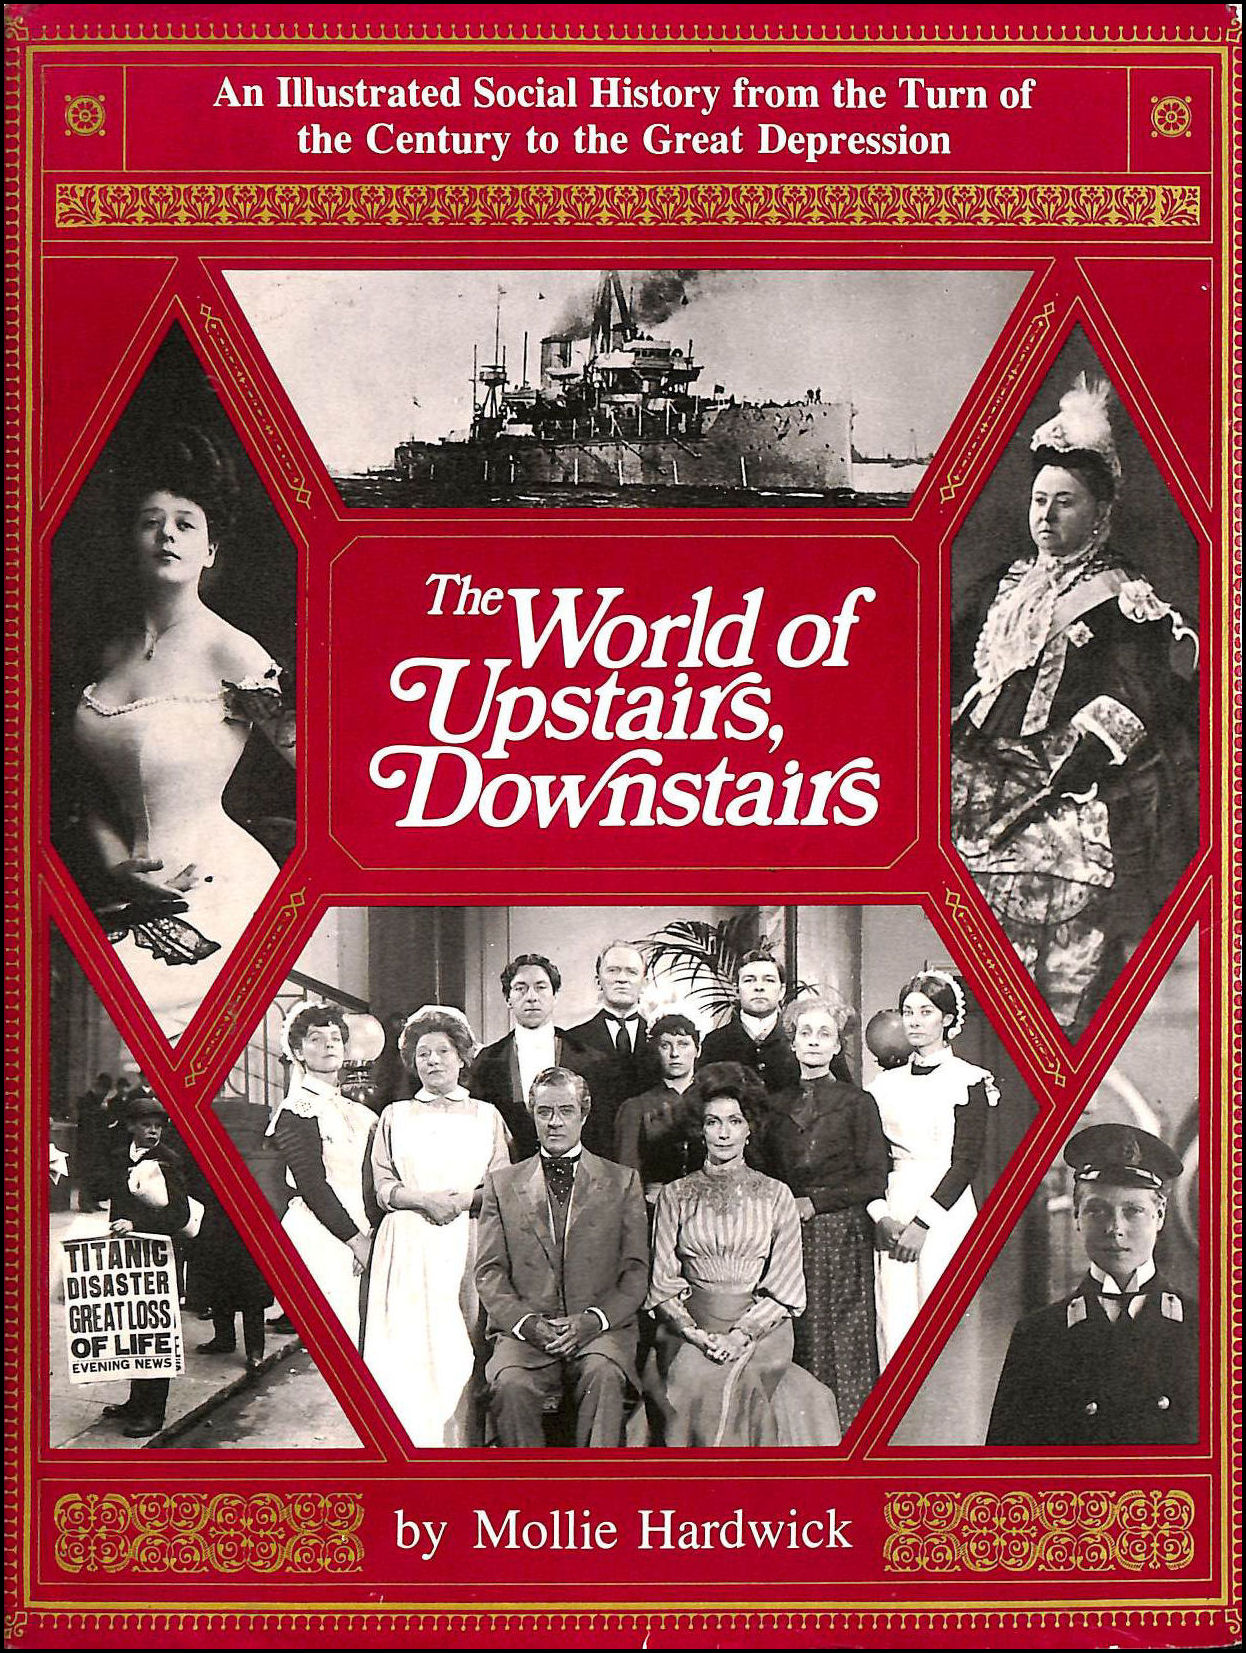 Image for World of Upstairs, Downstairs: An Illustrated Social History from the Turn of the Century to the Great Depression